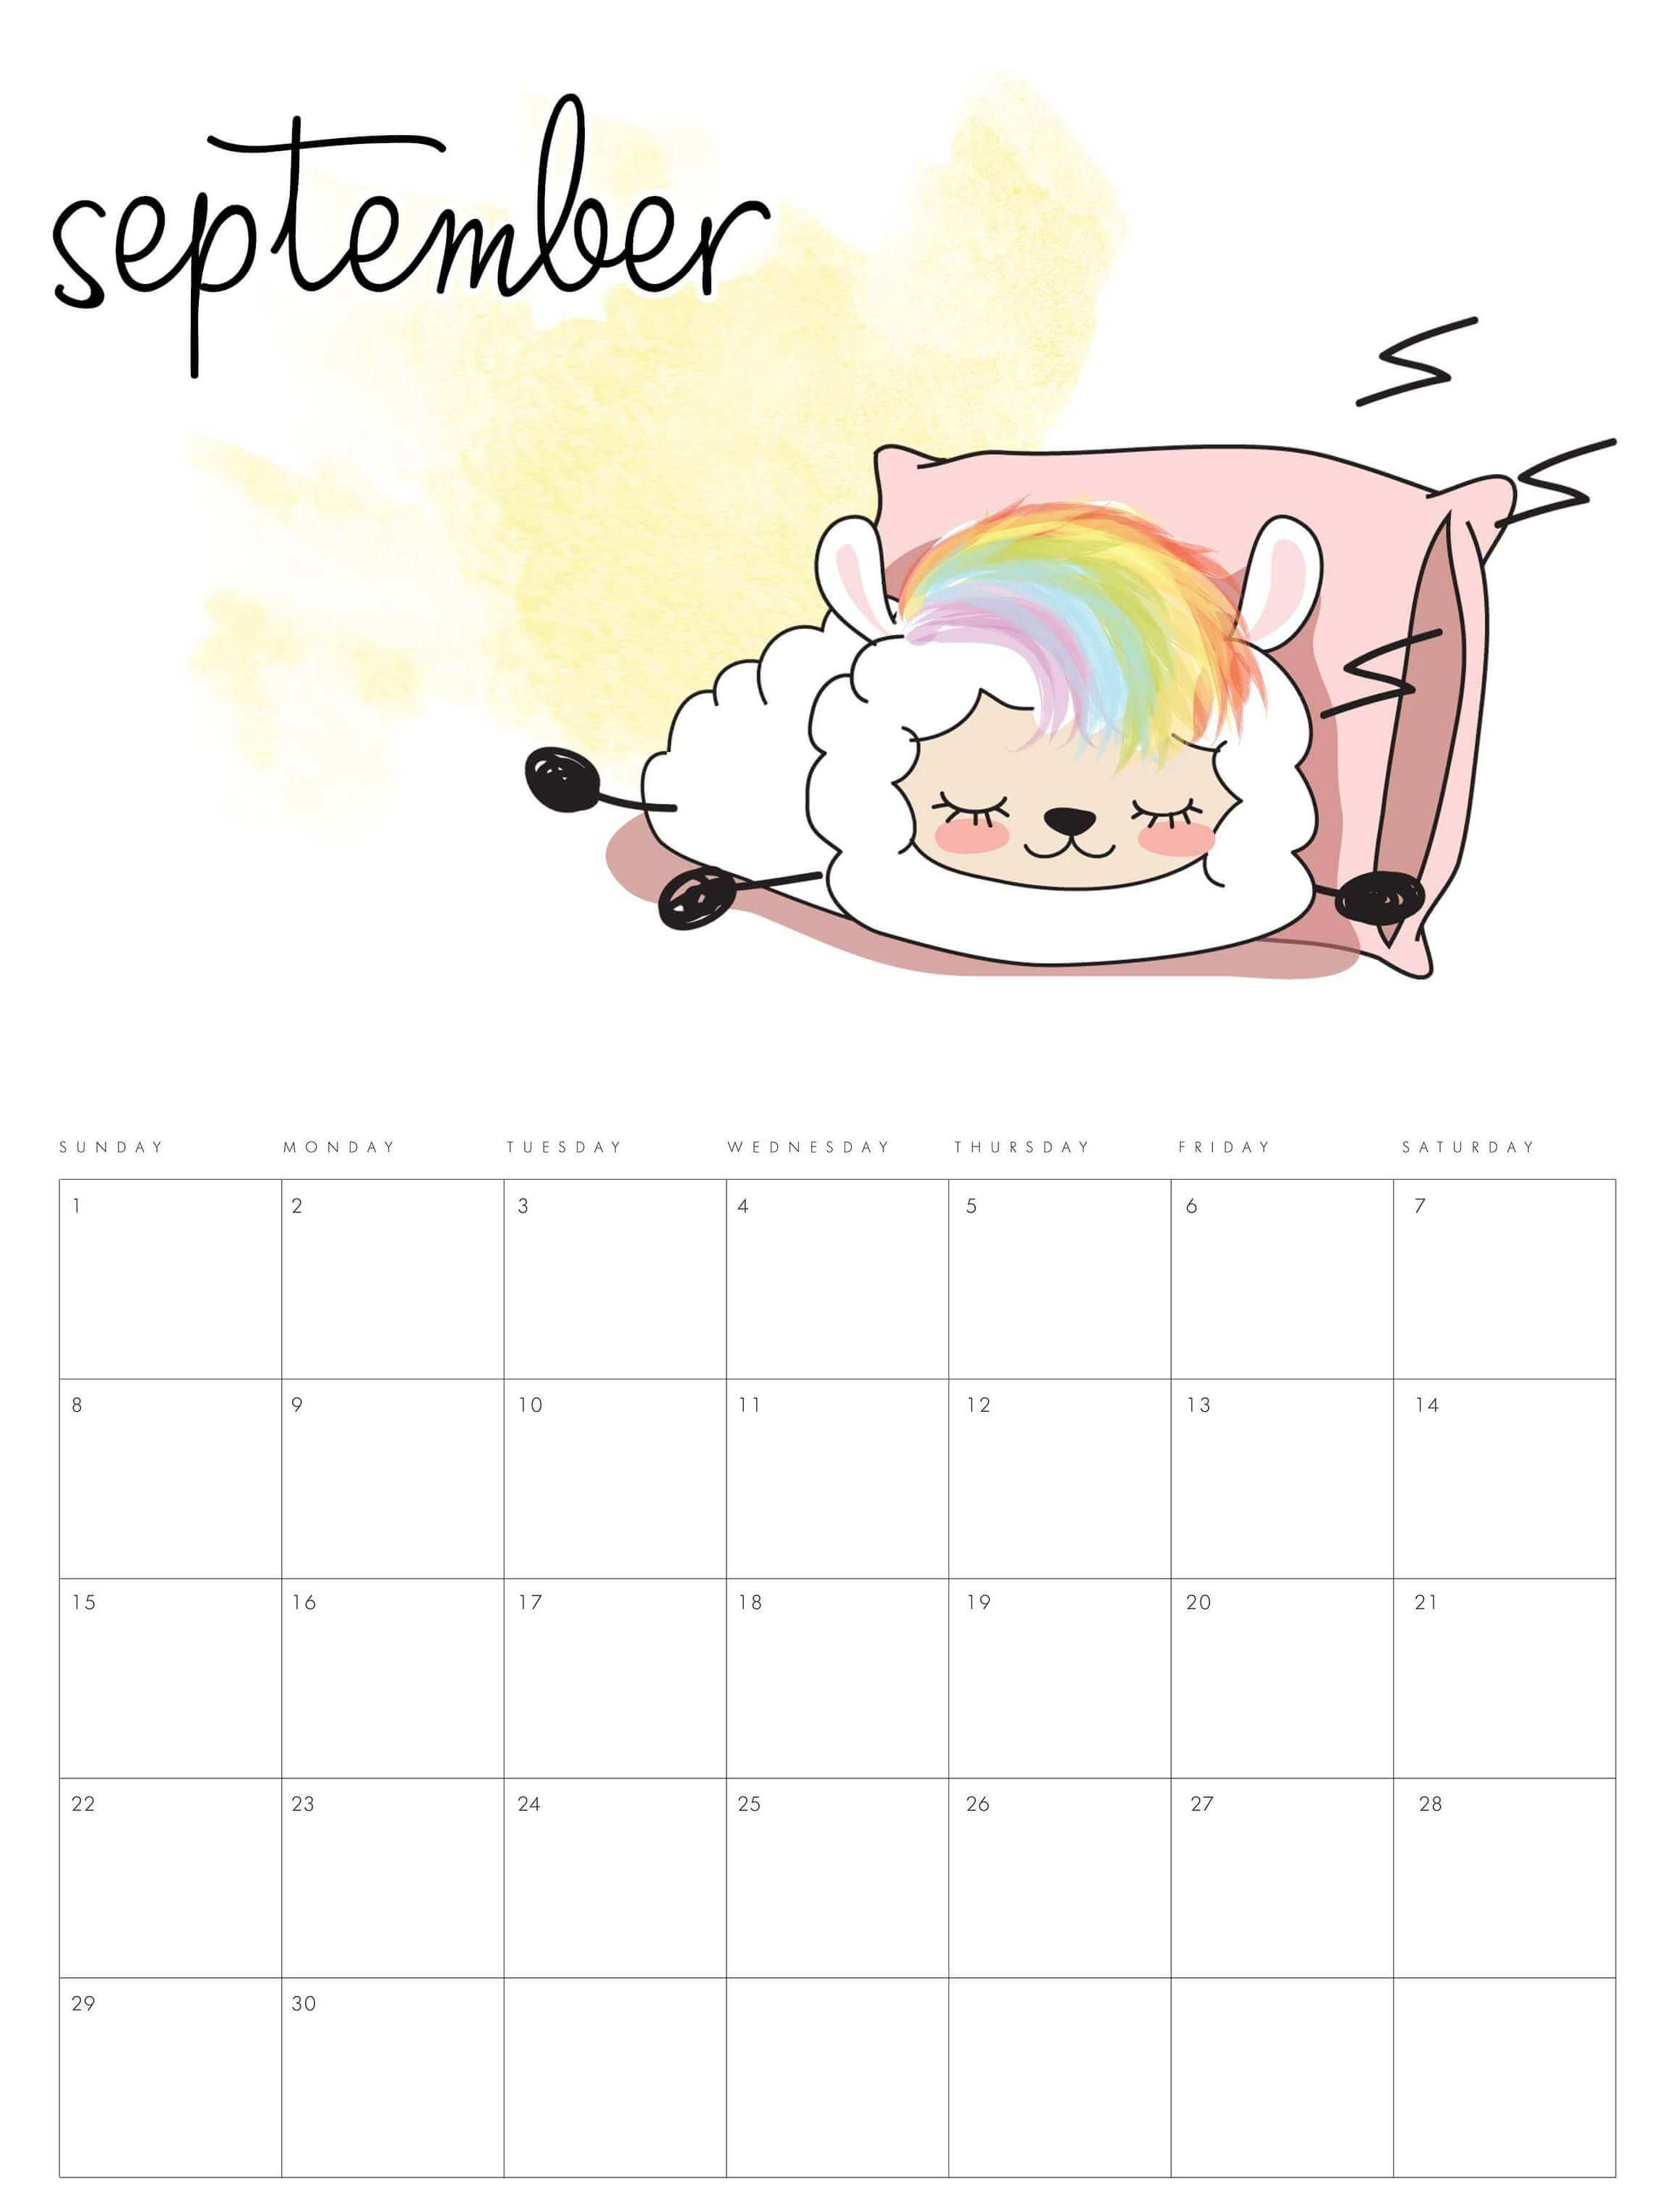 Monthly September Calendar 2019